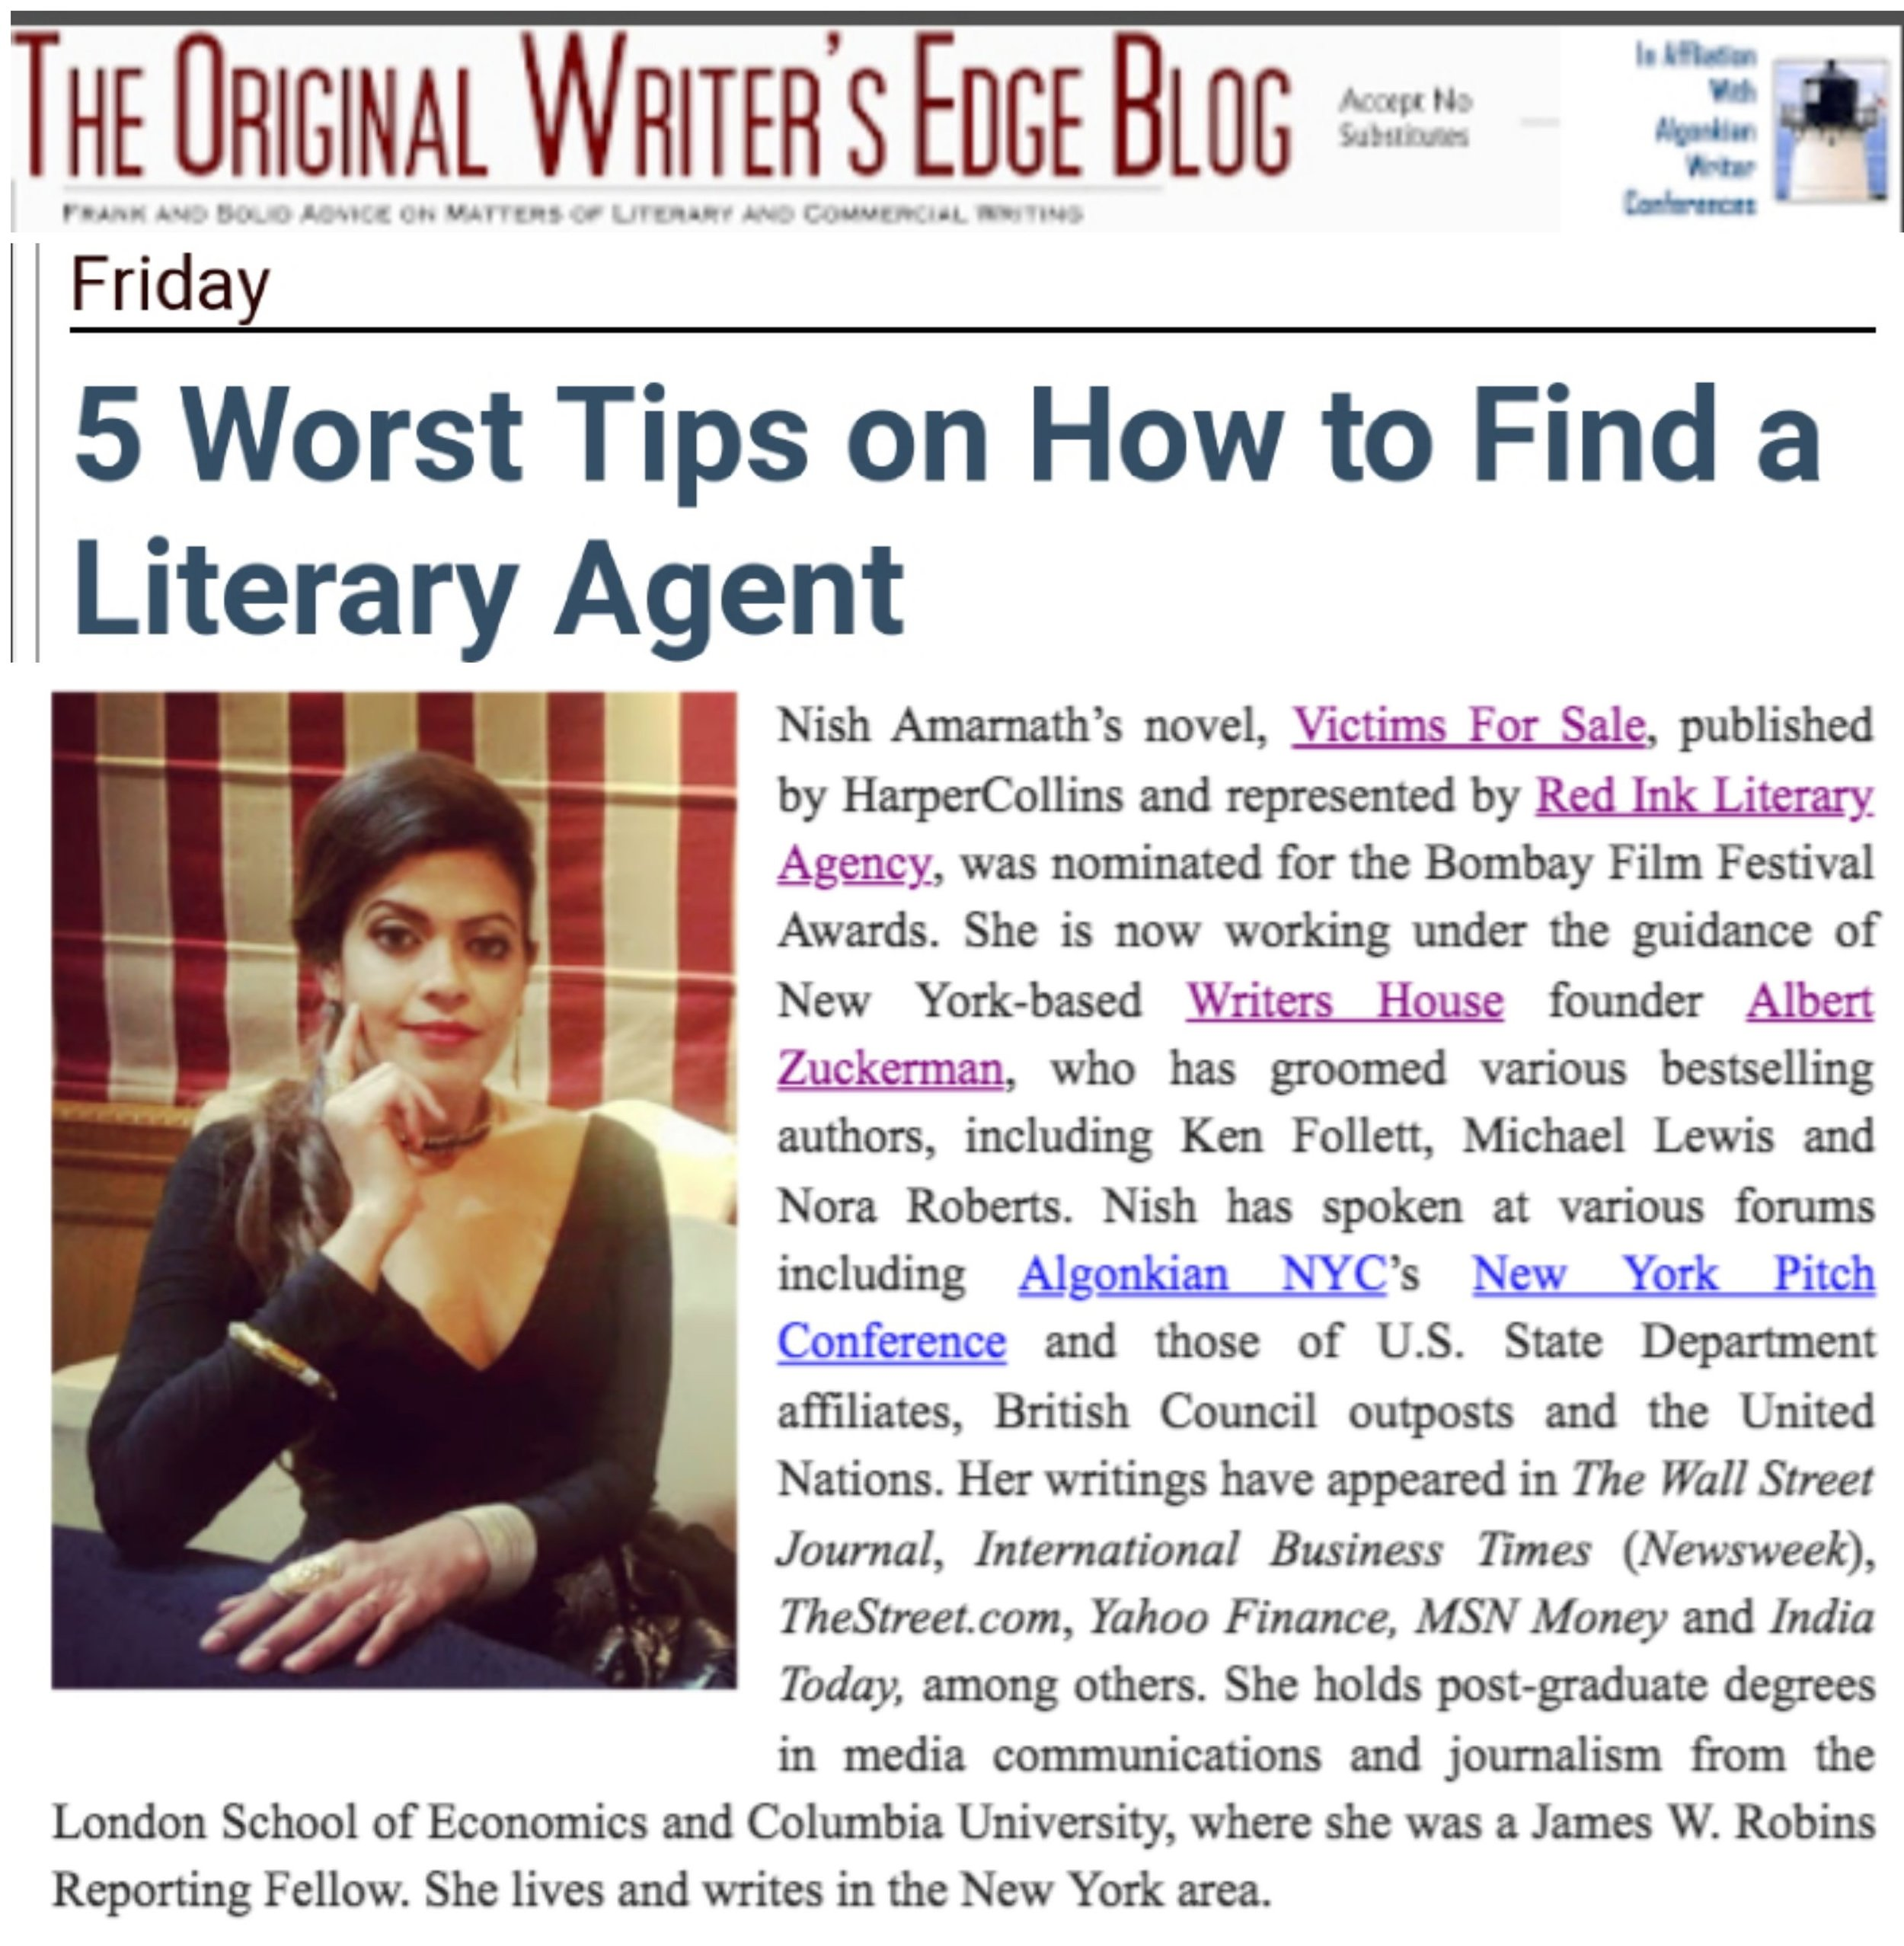 ALGONKIAN NYC, WRITER'S EDGE, NEW YORK - 5 Worst Tips on How to Find a Literary Agent. - By Nish Amarnath. MAY 2019The business of fiction writing is very instinctual. Against that backdrop, there is no definitive formula for success in finding a literary agent.Authors have been seeking my advice on how they can land a literary agent. At this point, many are desperate for a yes from an agent. I feel their pain. More than five years ago, I was in that oblivion too. It's easy to get distracted and/or feel disoriented by all the noise out there on what to do and what not to do. But, here are five positively worst bits of advice authors have been getting on how to ink that deal. READ MORE.